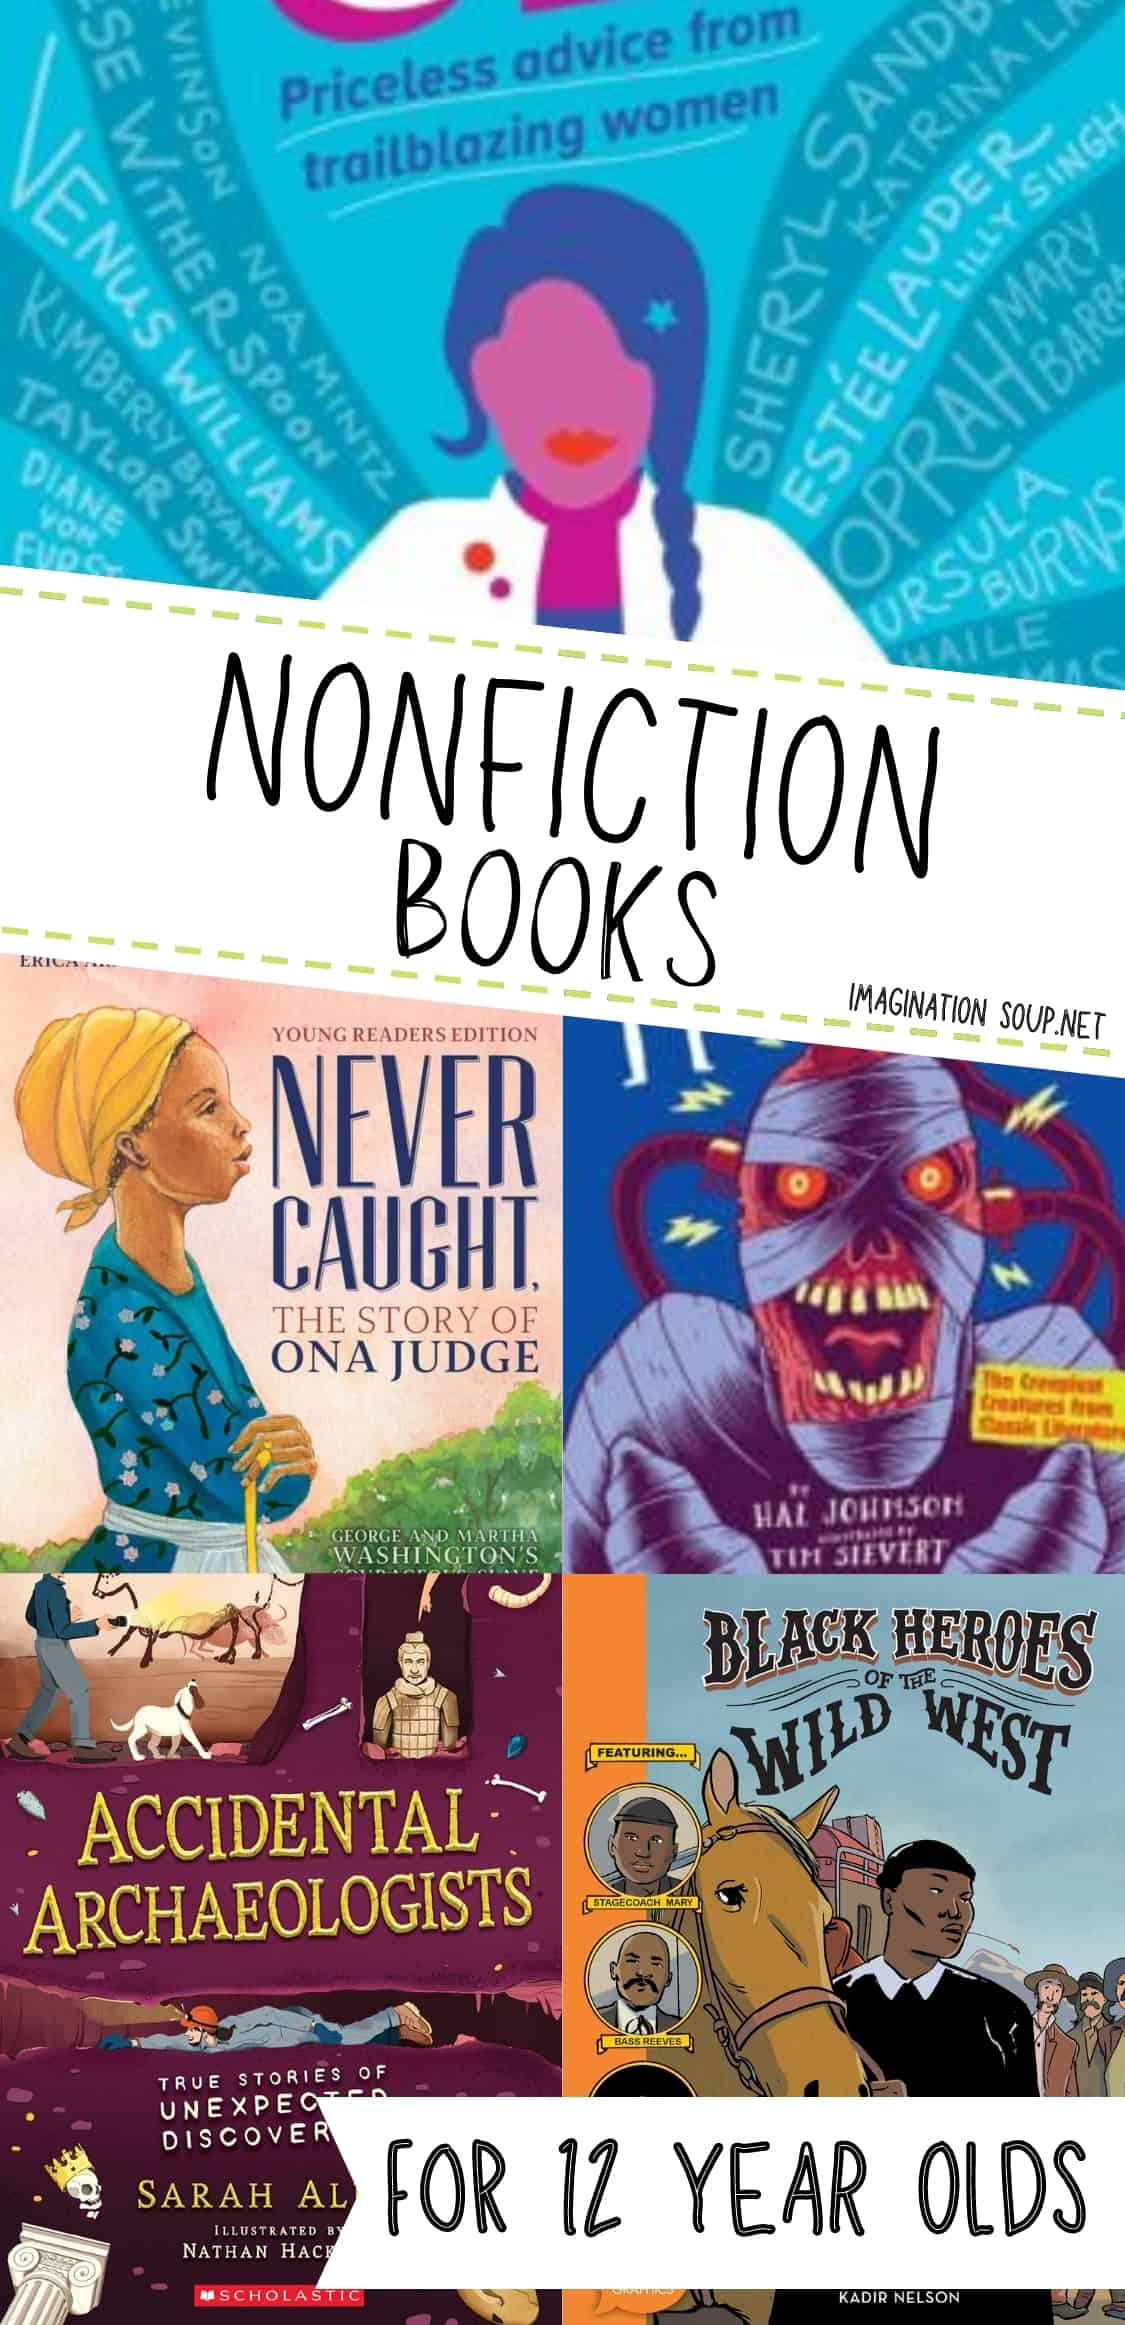 nonfiction books for 12 year olds